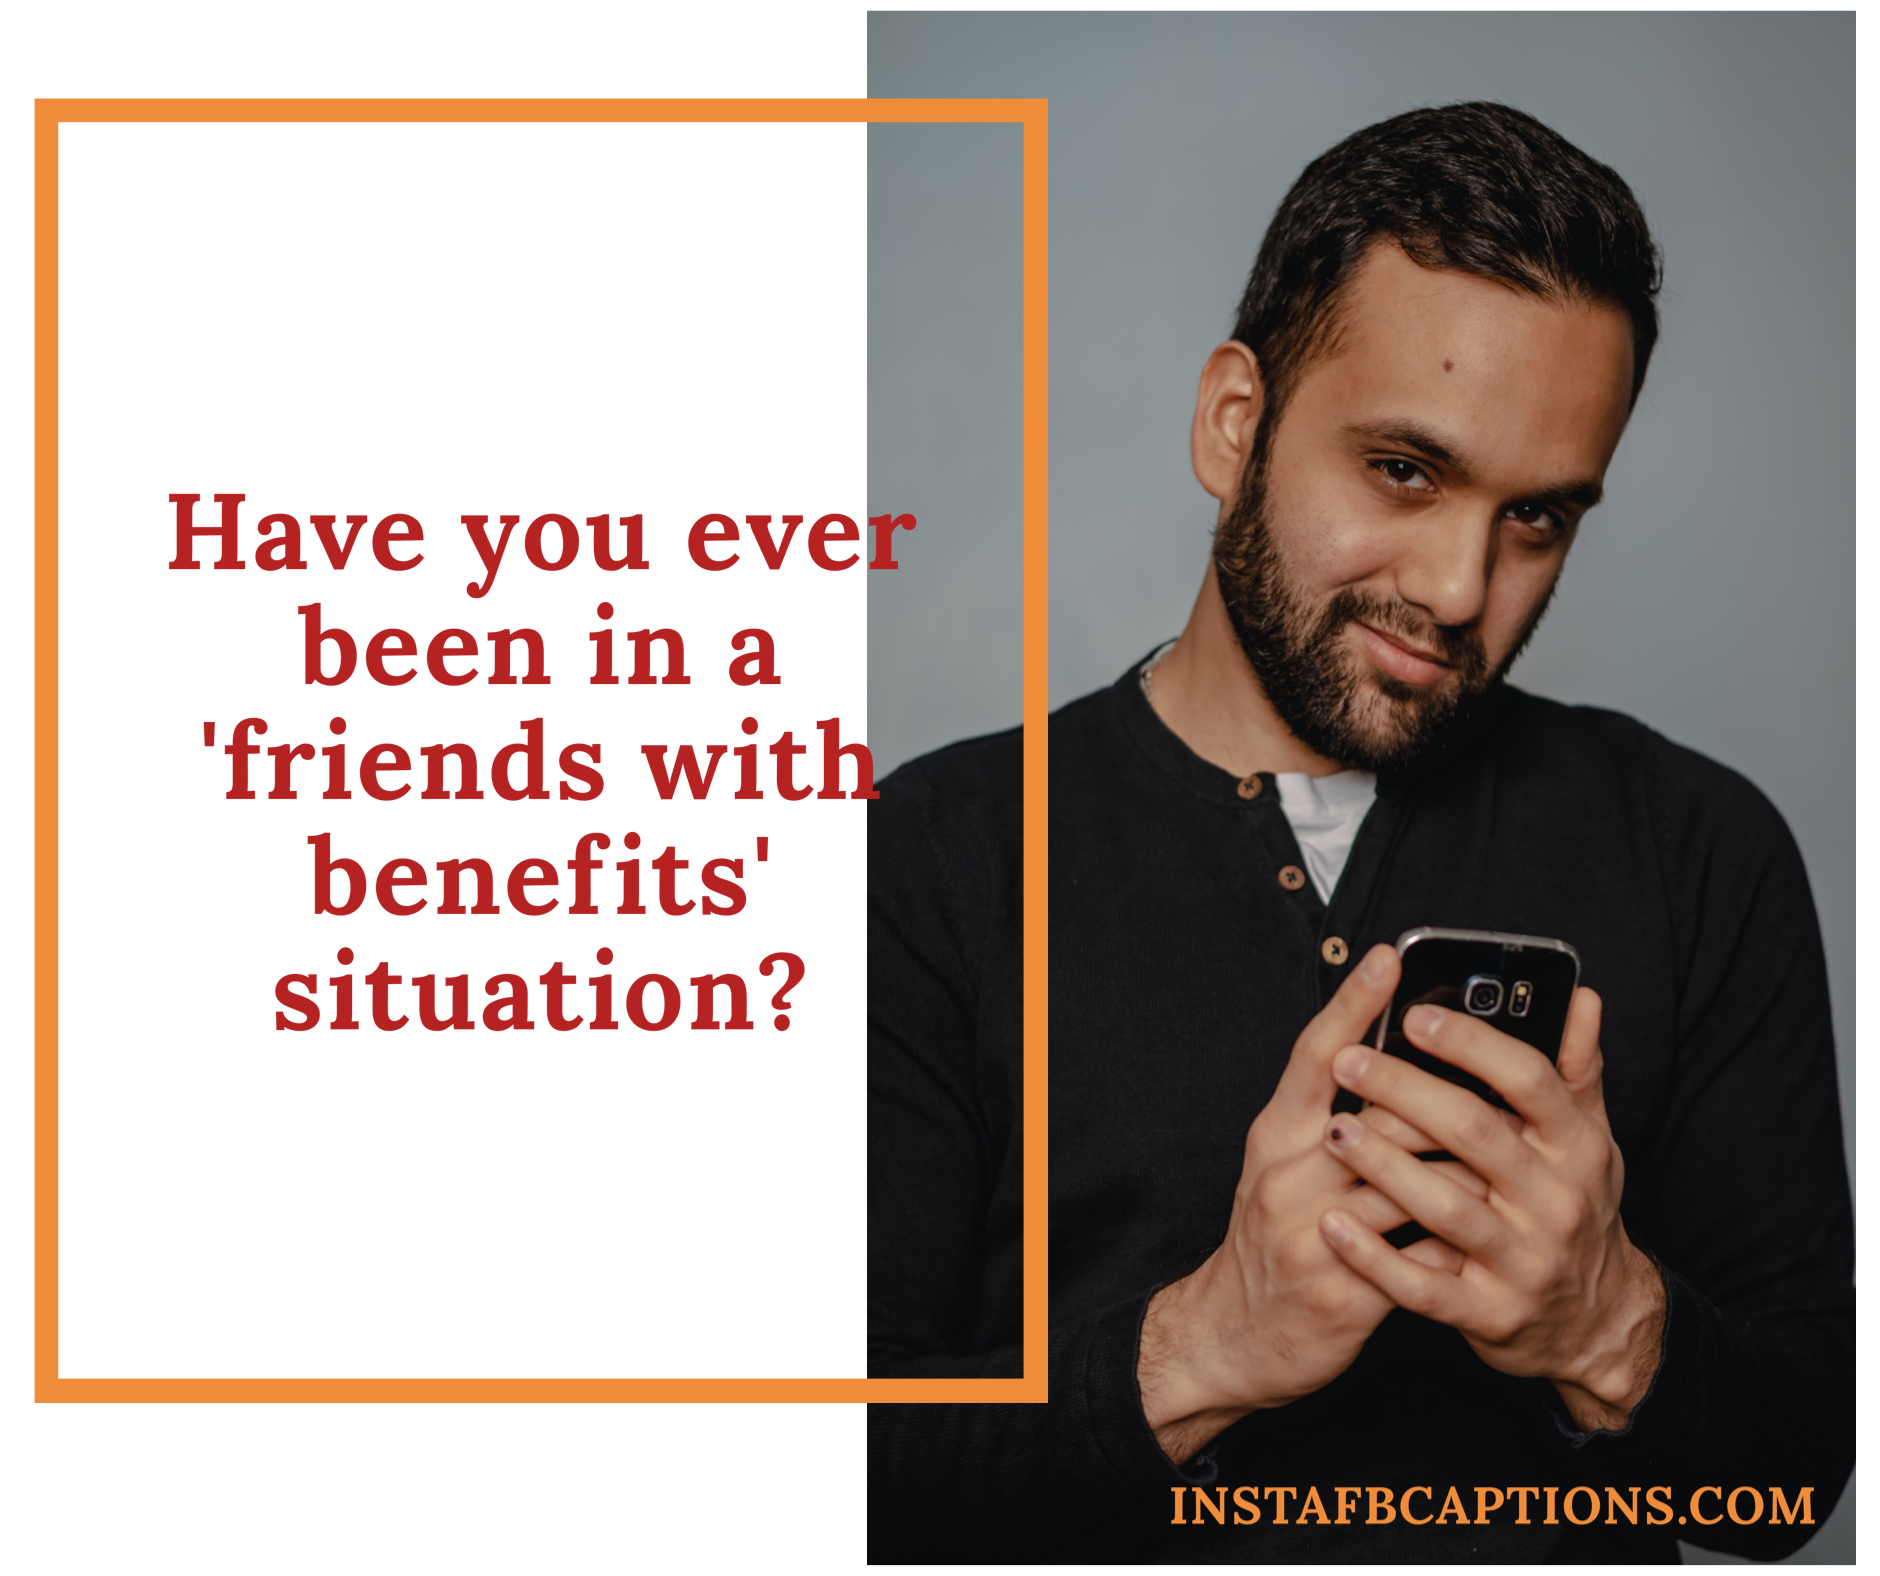 Dirty questions to ask friends  - E0C93C88 A9AE 4ED6 BCC8 FCB250E69706 - Crazy QUESTIONS To Ask FRIENDS in 2021